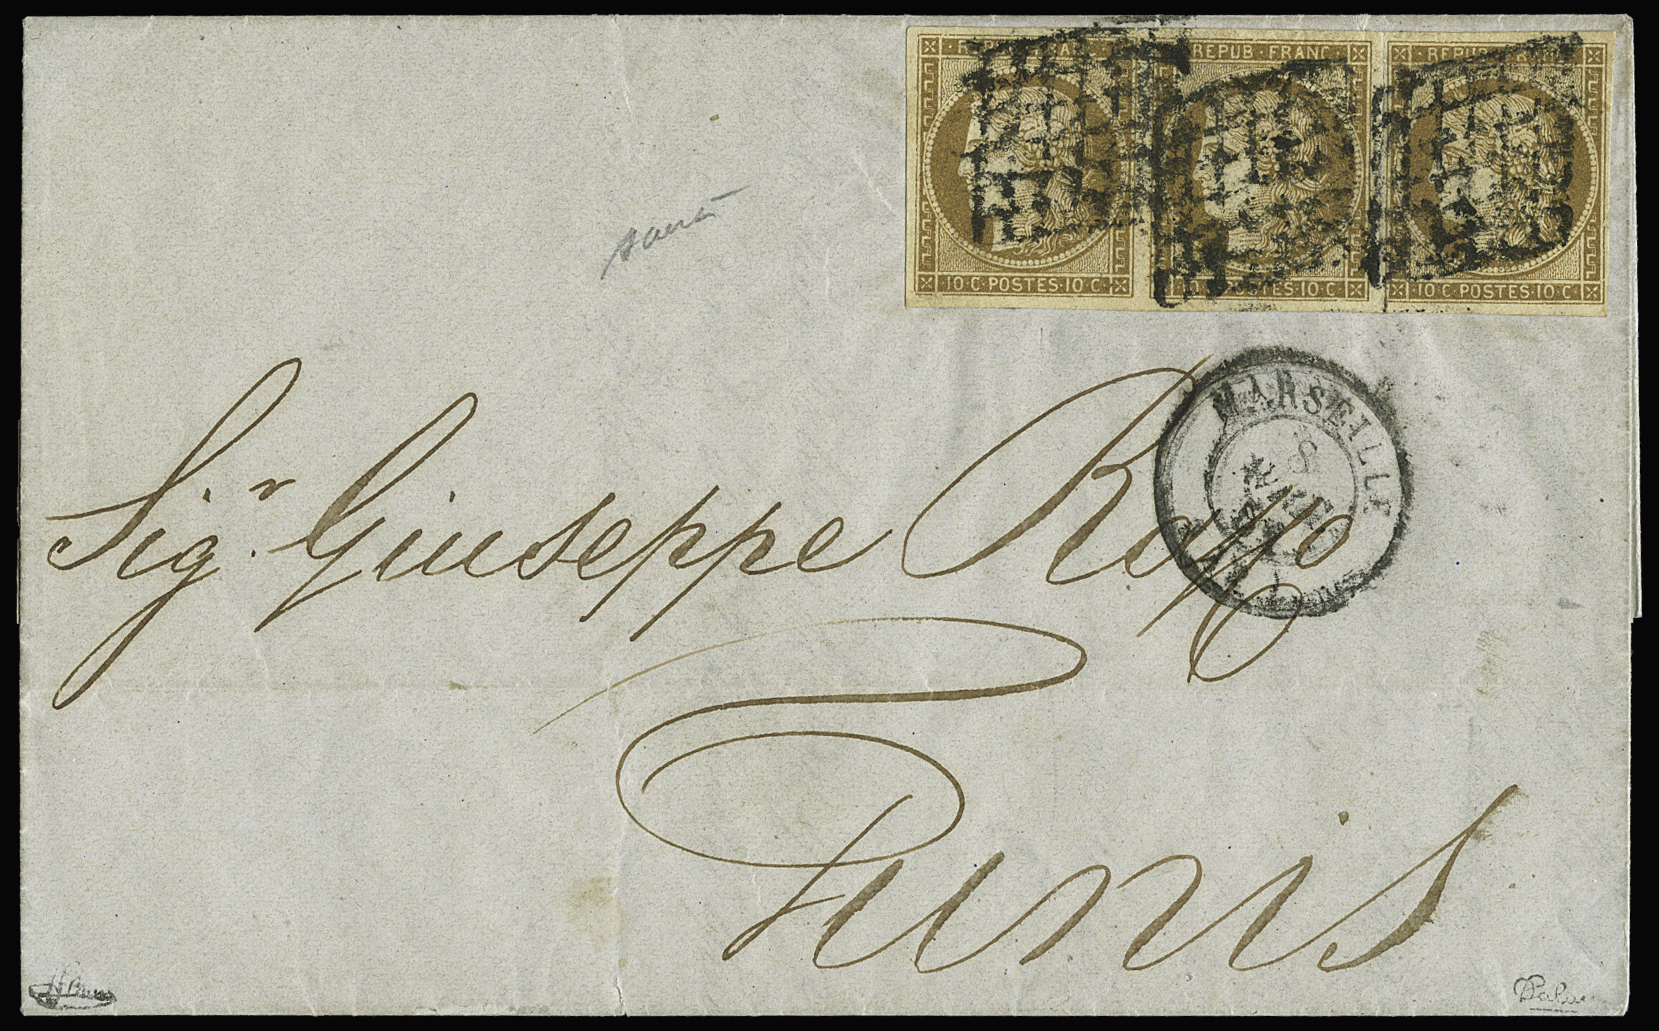 Lot 3 - France ceres 1849-1850 -  Le Timbre Classique SA SALE ON OFFERS N ° 36 PARIS